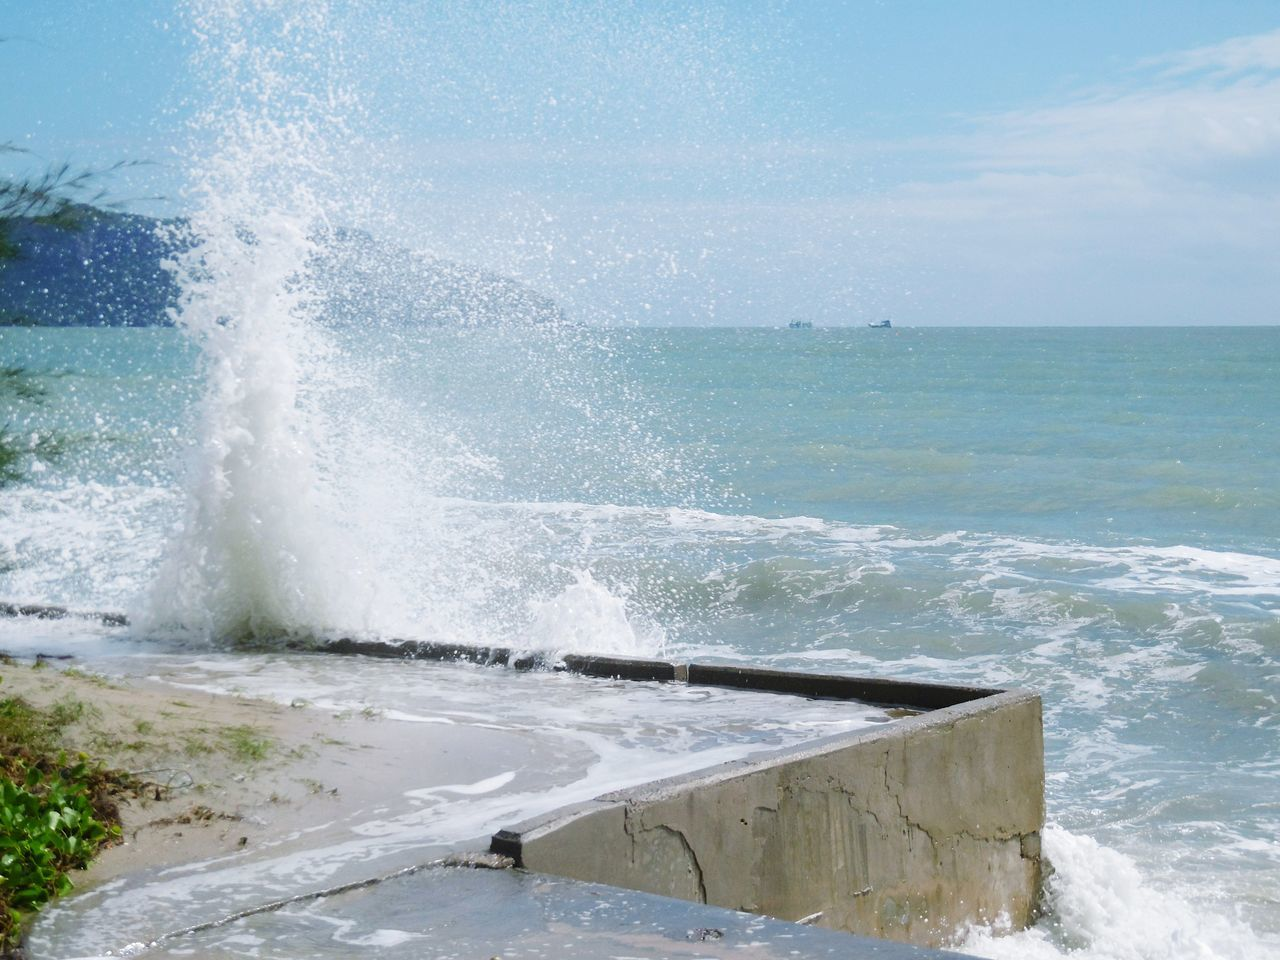 sea, water, motion, nature, horizon over water, force, beauty in nature, splashing, power in nature, scenics, day, outdoors, wave, no people, sky, crash